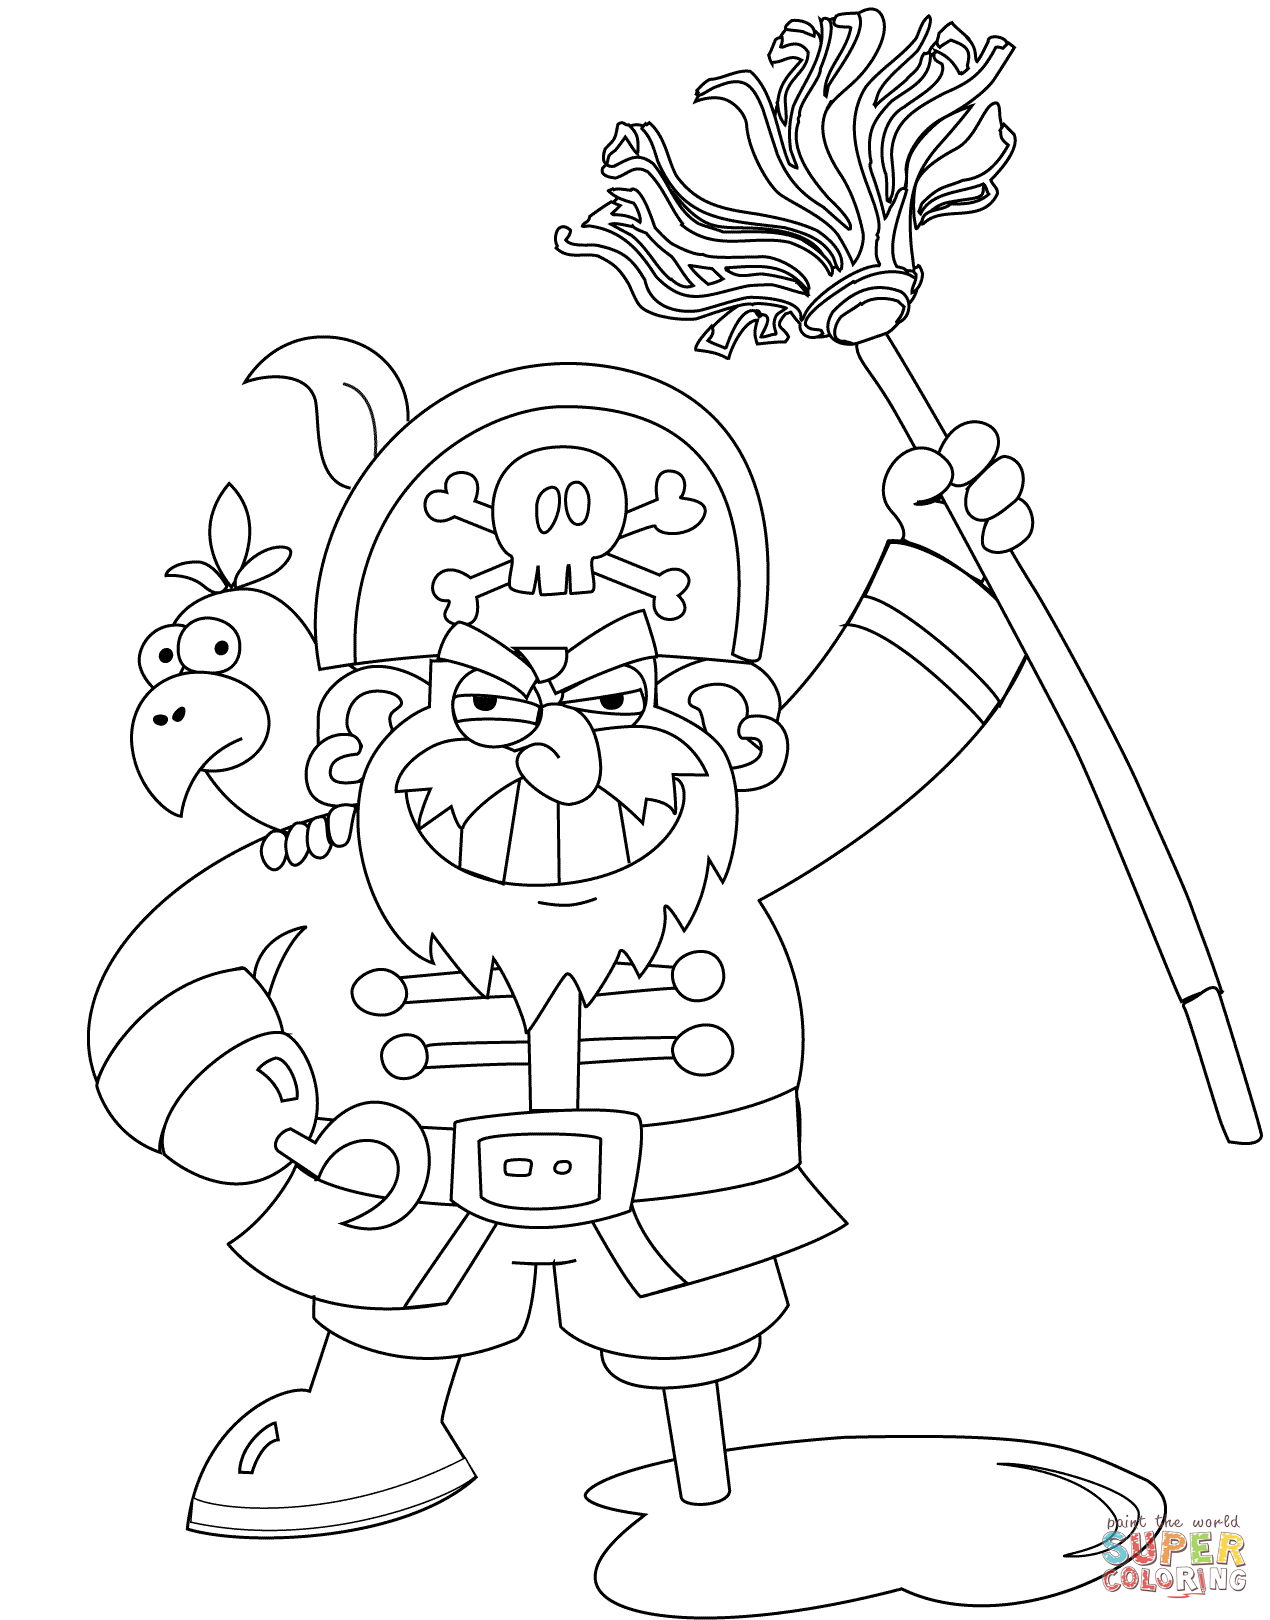 Pirate With Mop Coloring Page